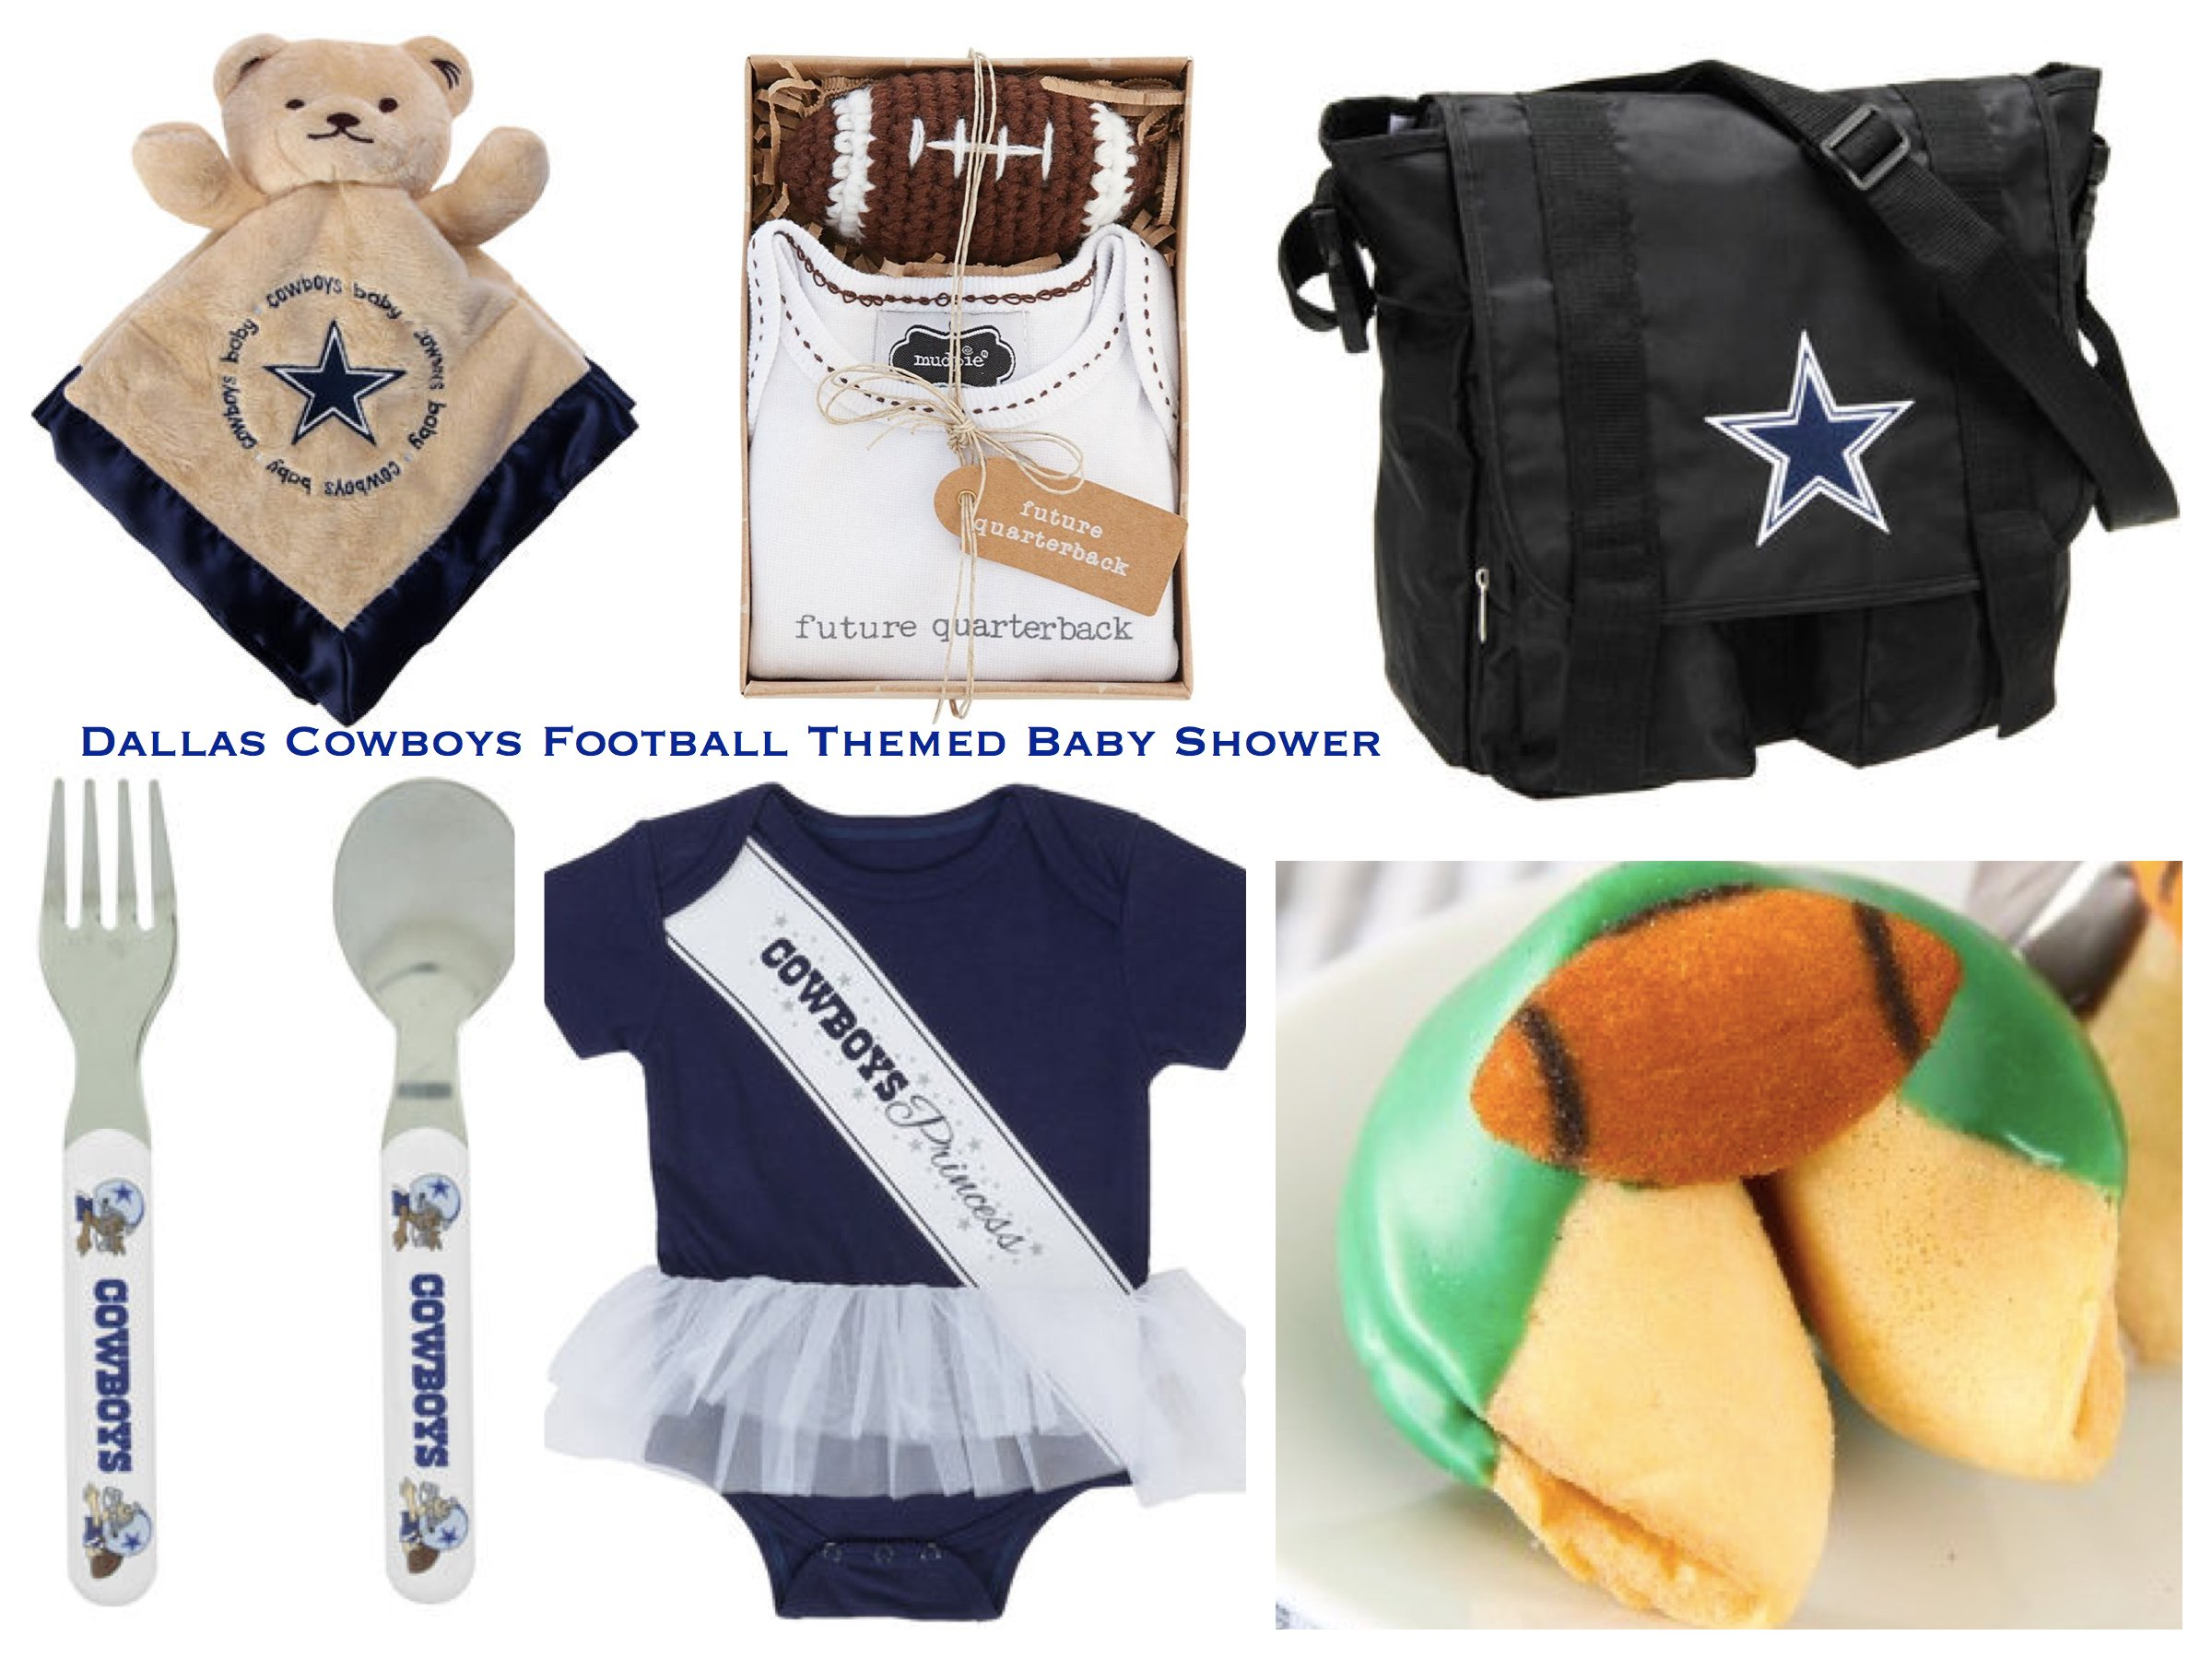 Dallas Cowboys Football Themed Football Baby Shower